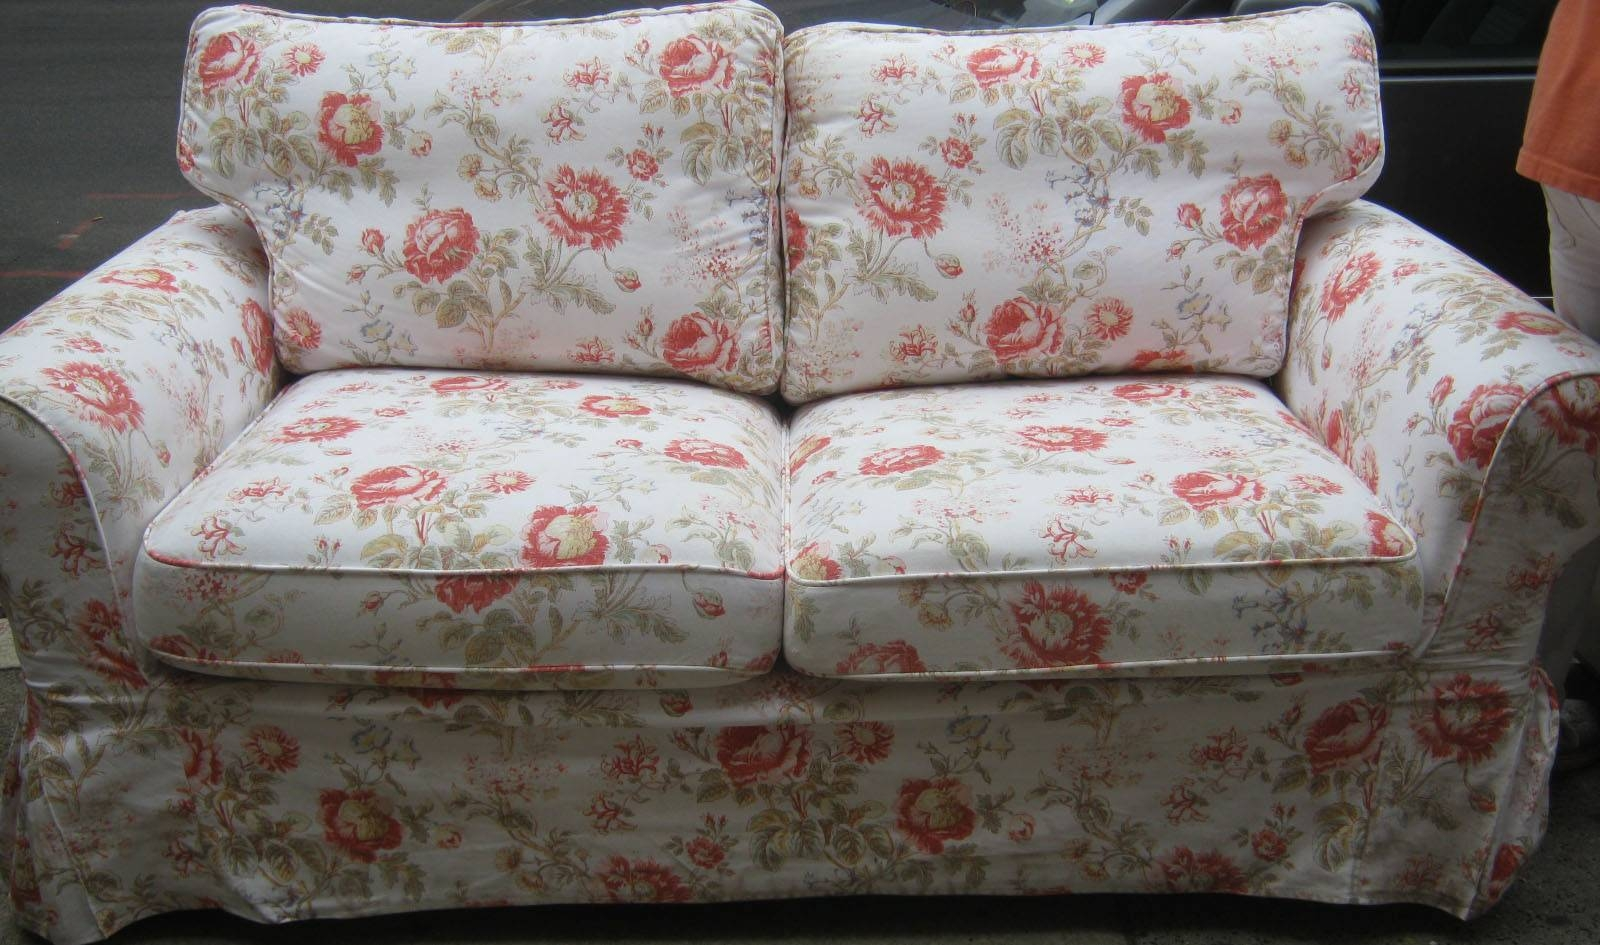 Sofas Center : Fascinating Floral Sofa Covers Picture Inspirations throughout Clearance Sofa Covers (Image 17 of 30)